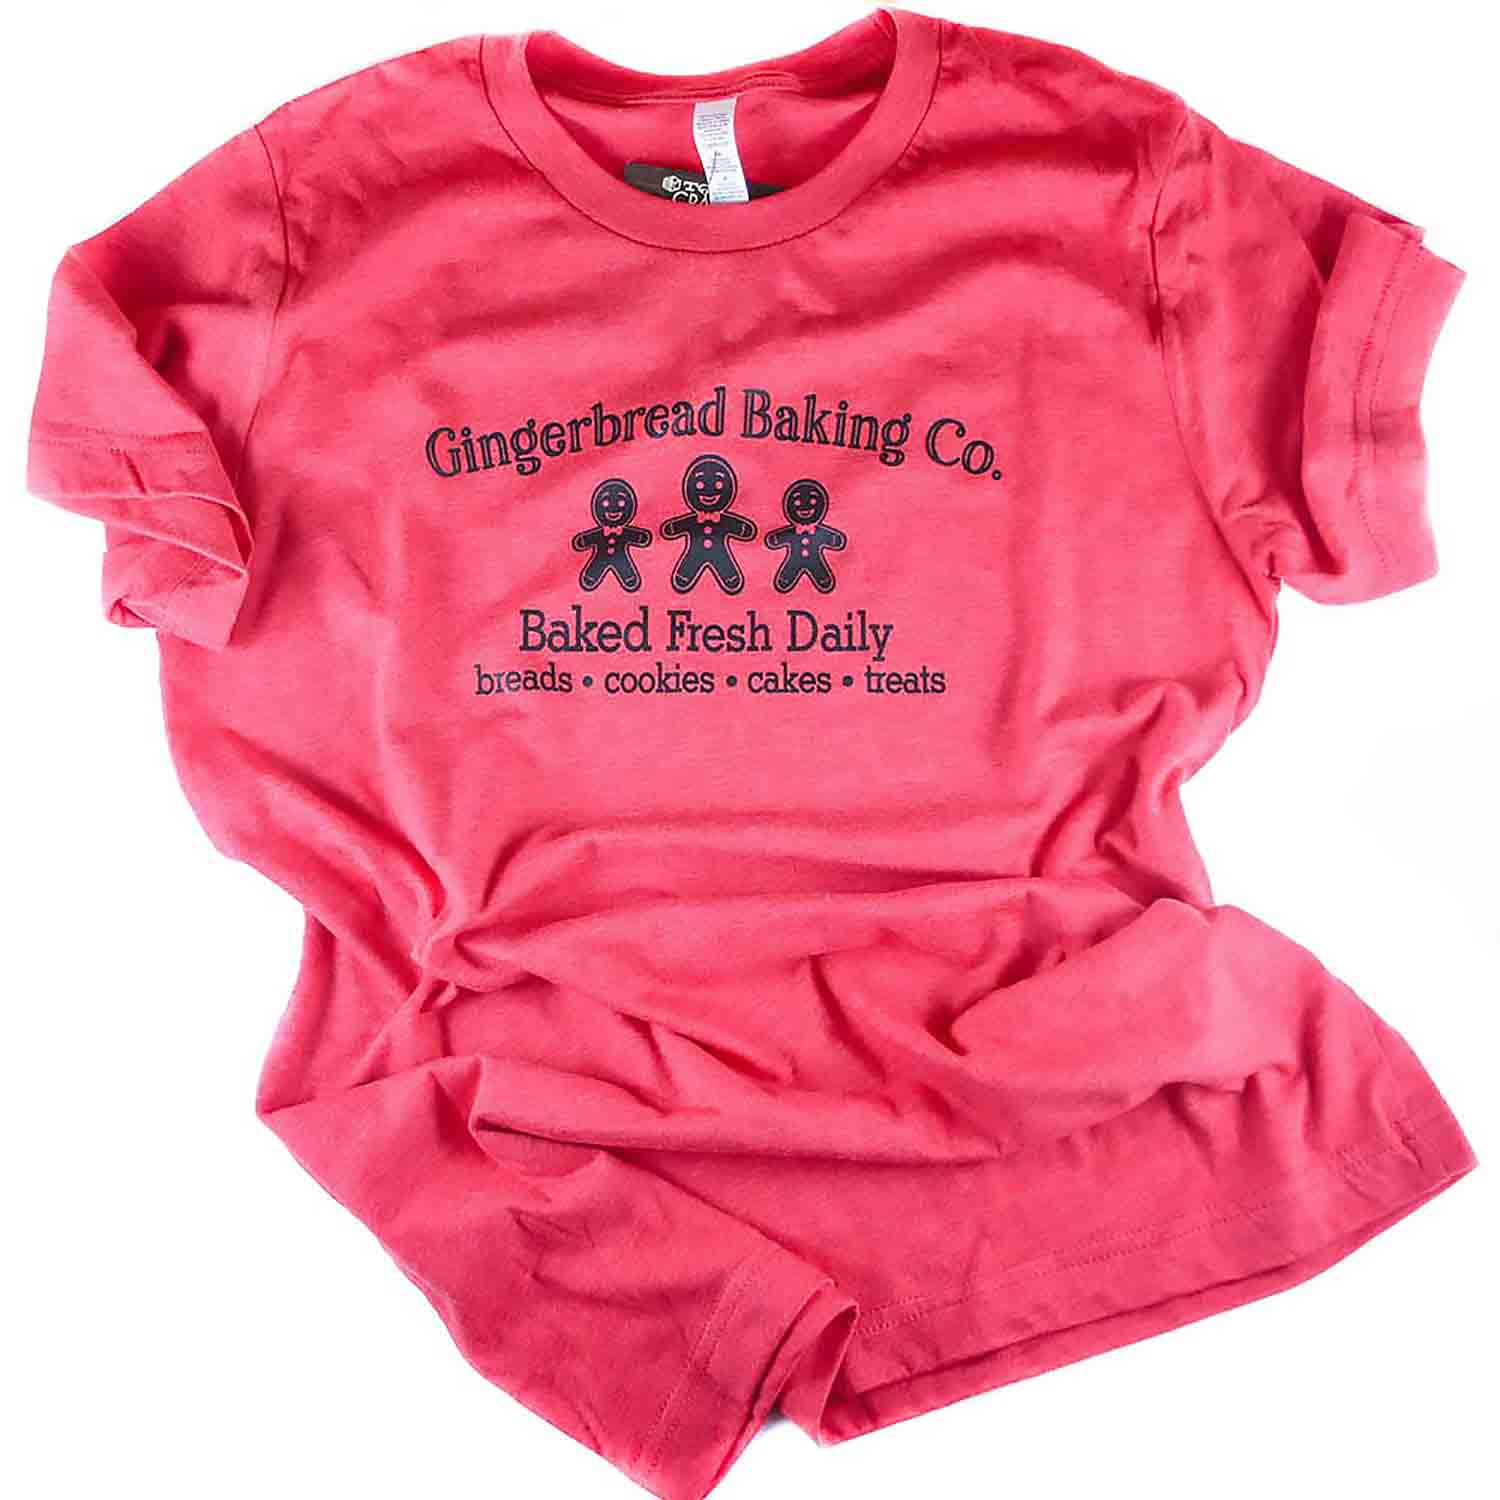 Red Gingerbread Baking Co. T-Shirt - Medium